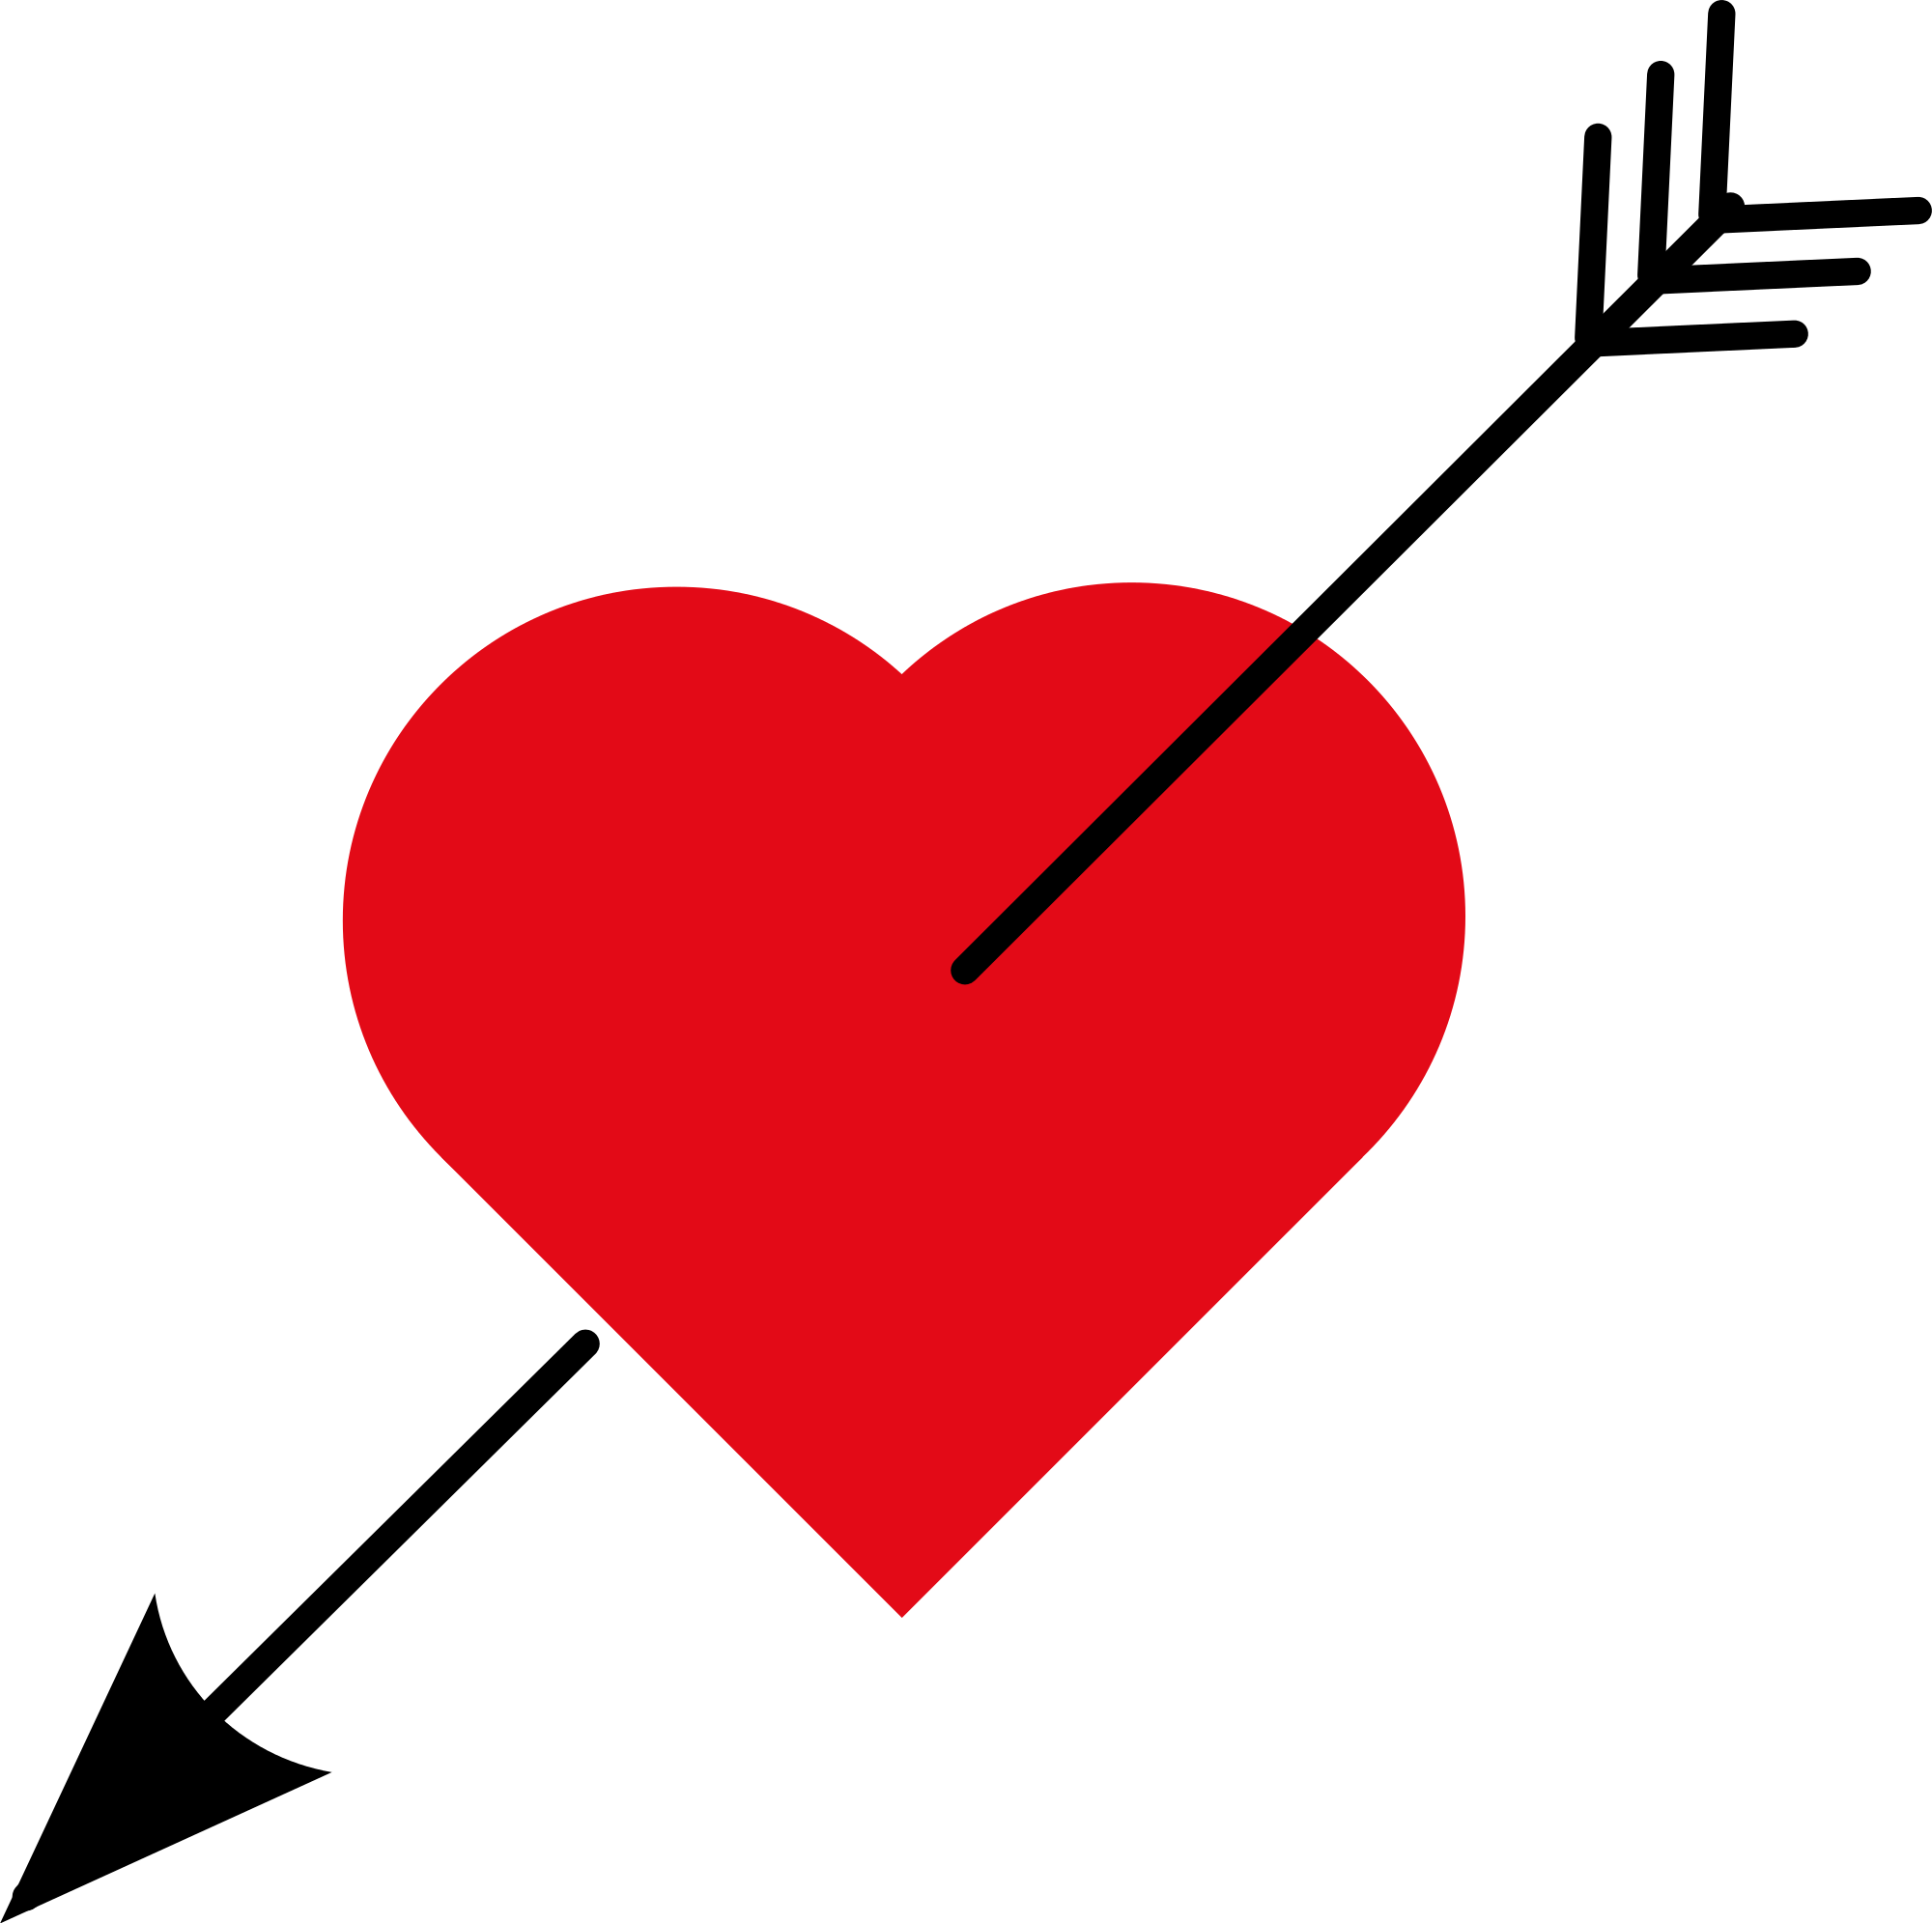 Love png file. Heart with arrow svg